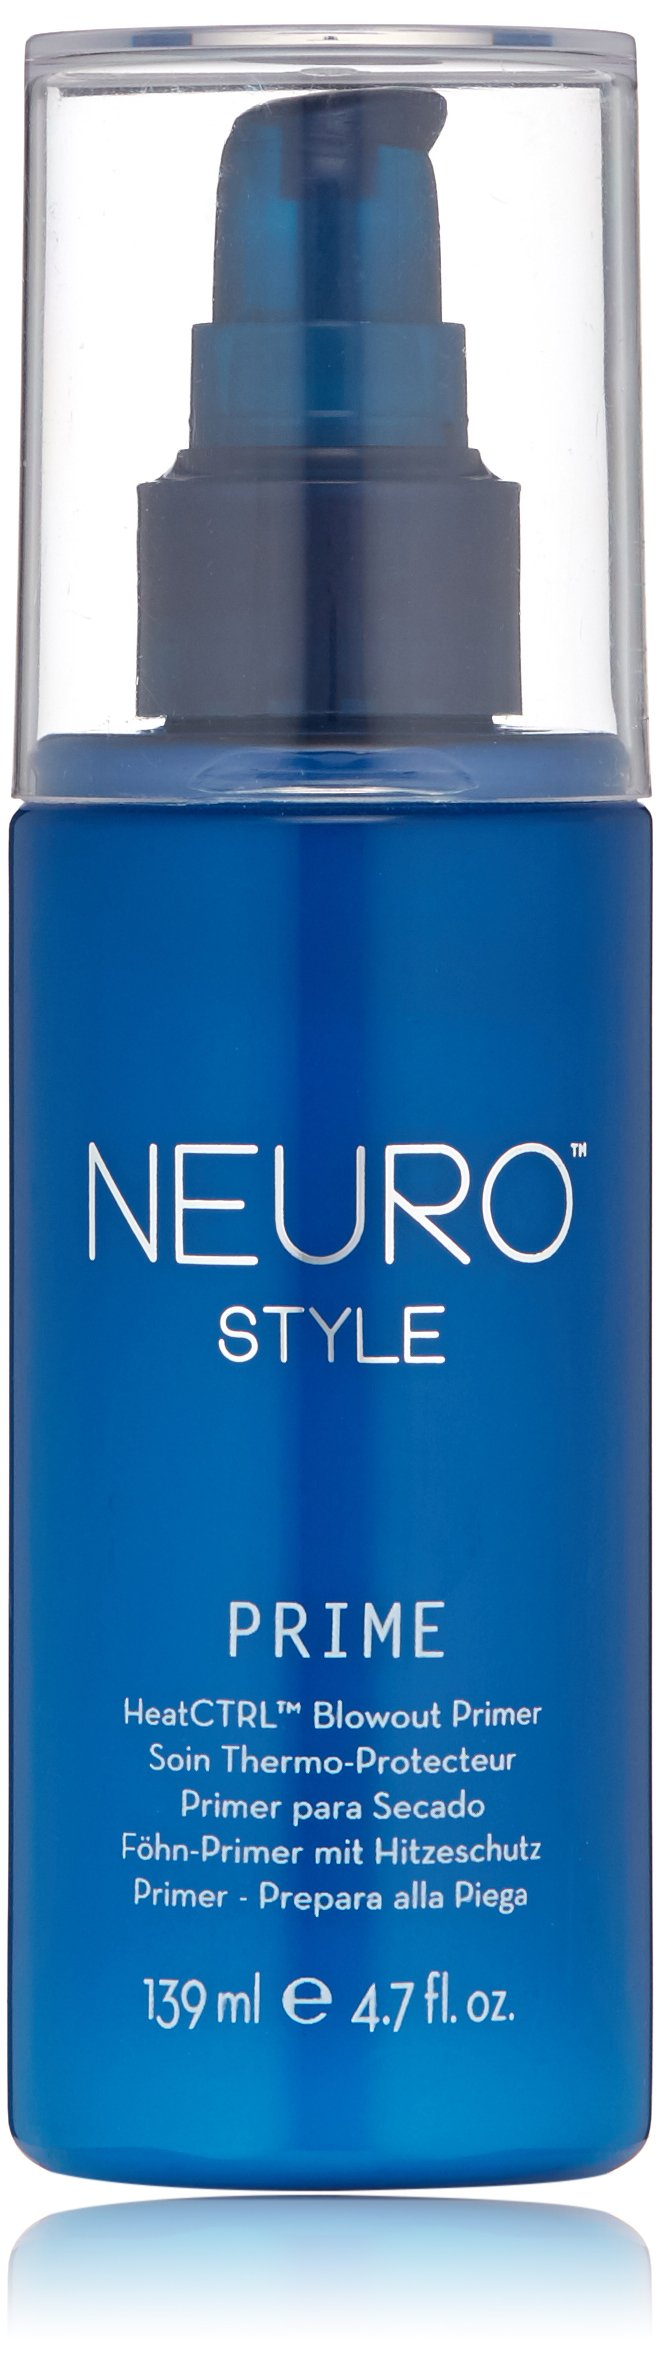 Neuro Prime Blowout Primer